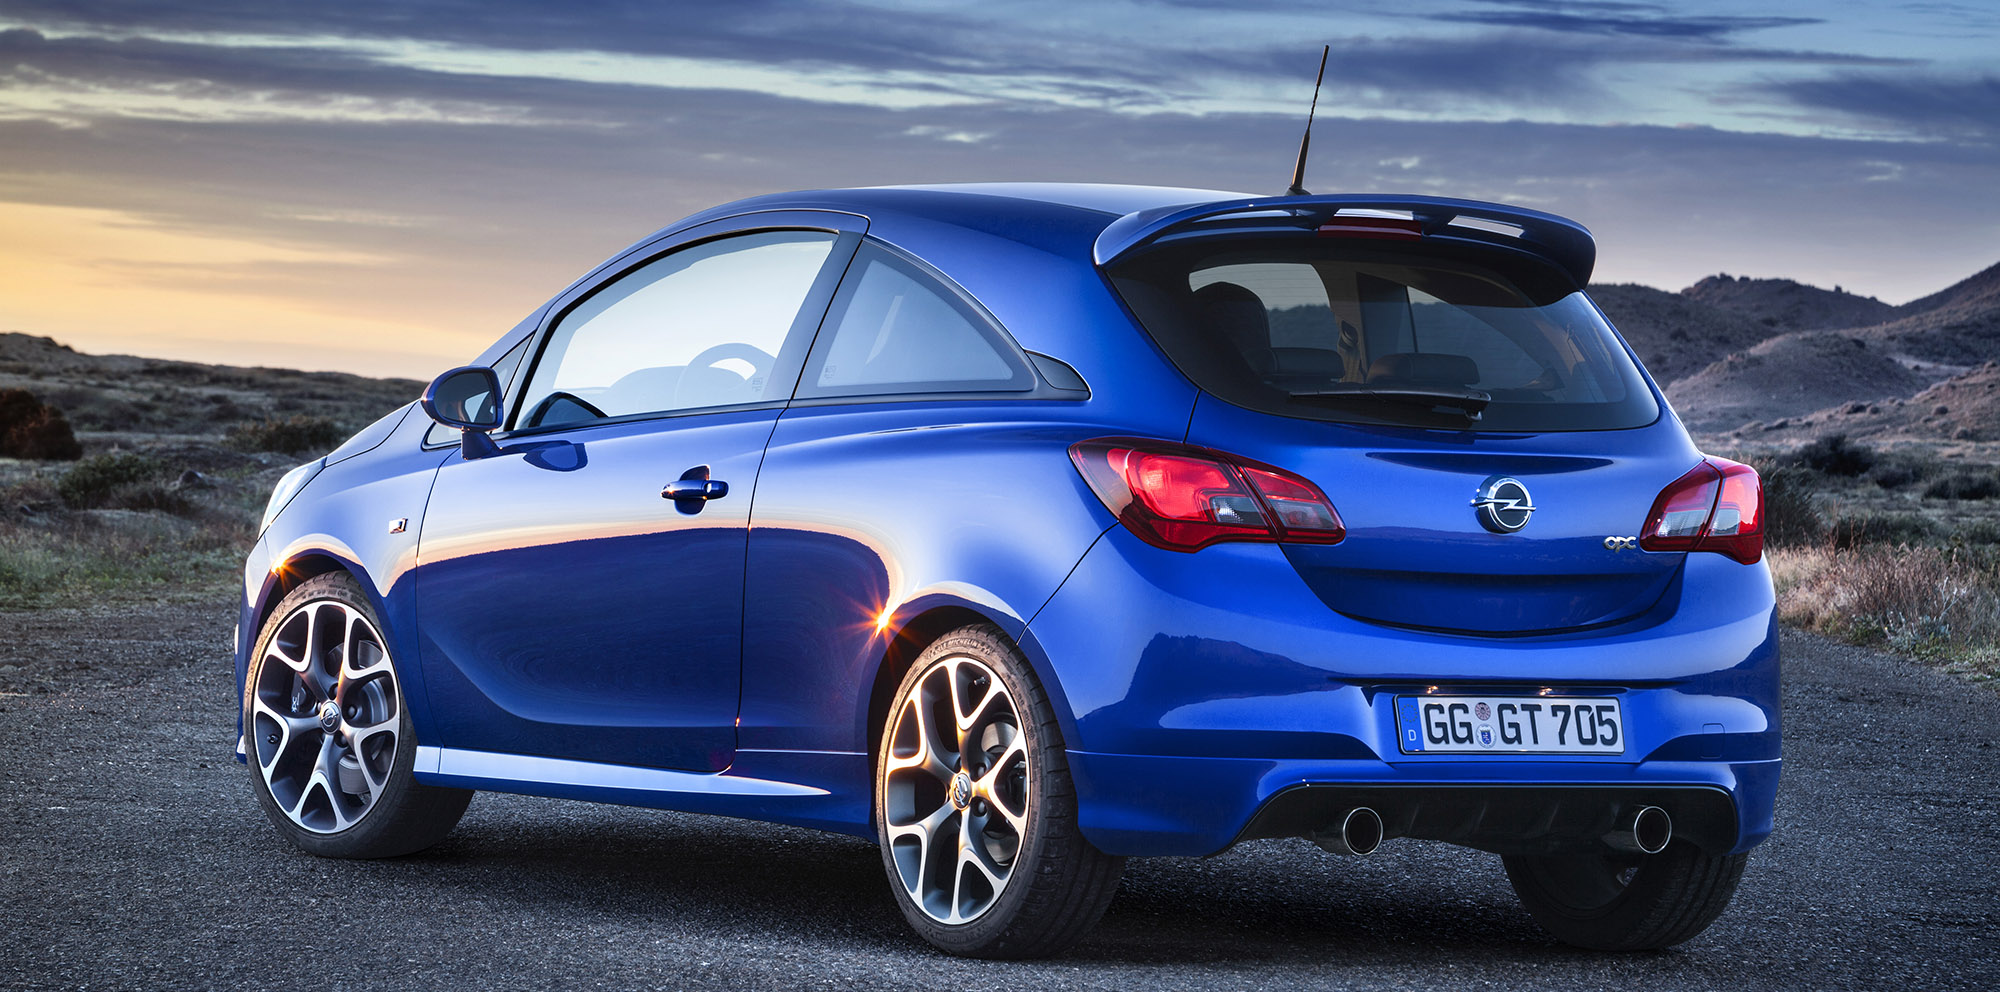 opel corsa opc revealed with 152kw turbo photos caradvice. Black Bedroom Furniture Sets. Home Design Ideas